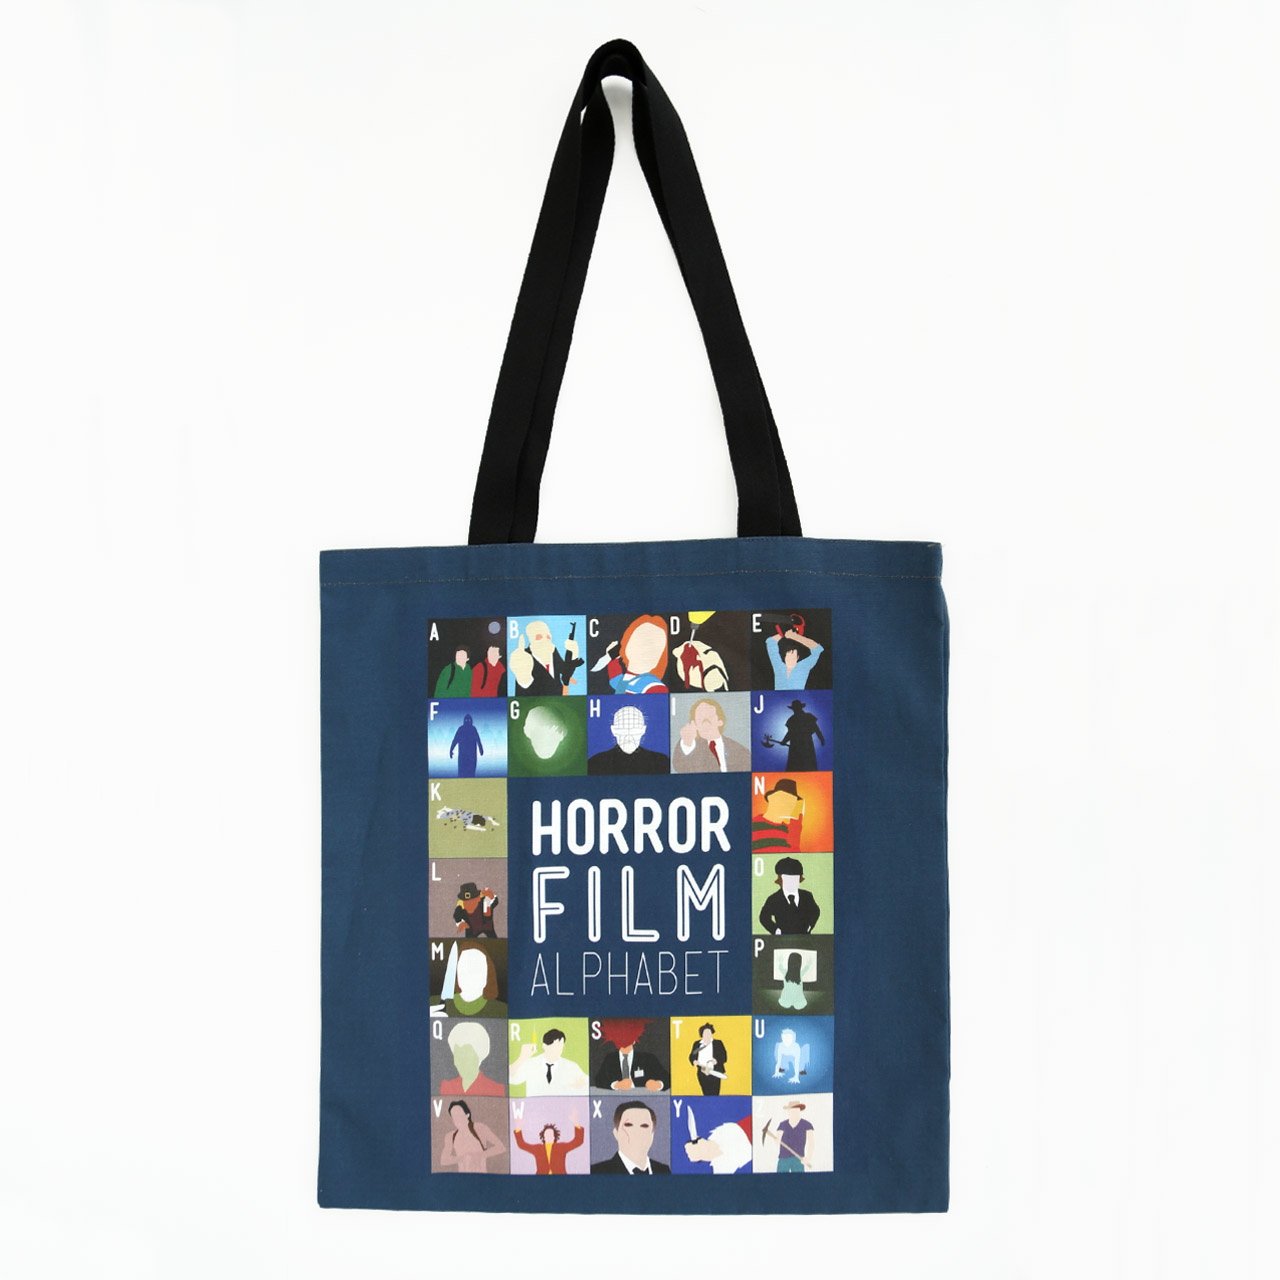 Buy Film Alphabet Tote Bag: Sci-Fi